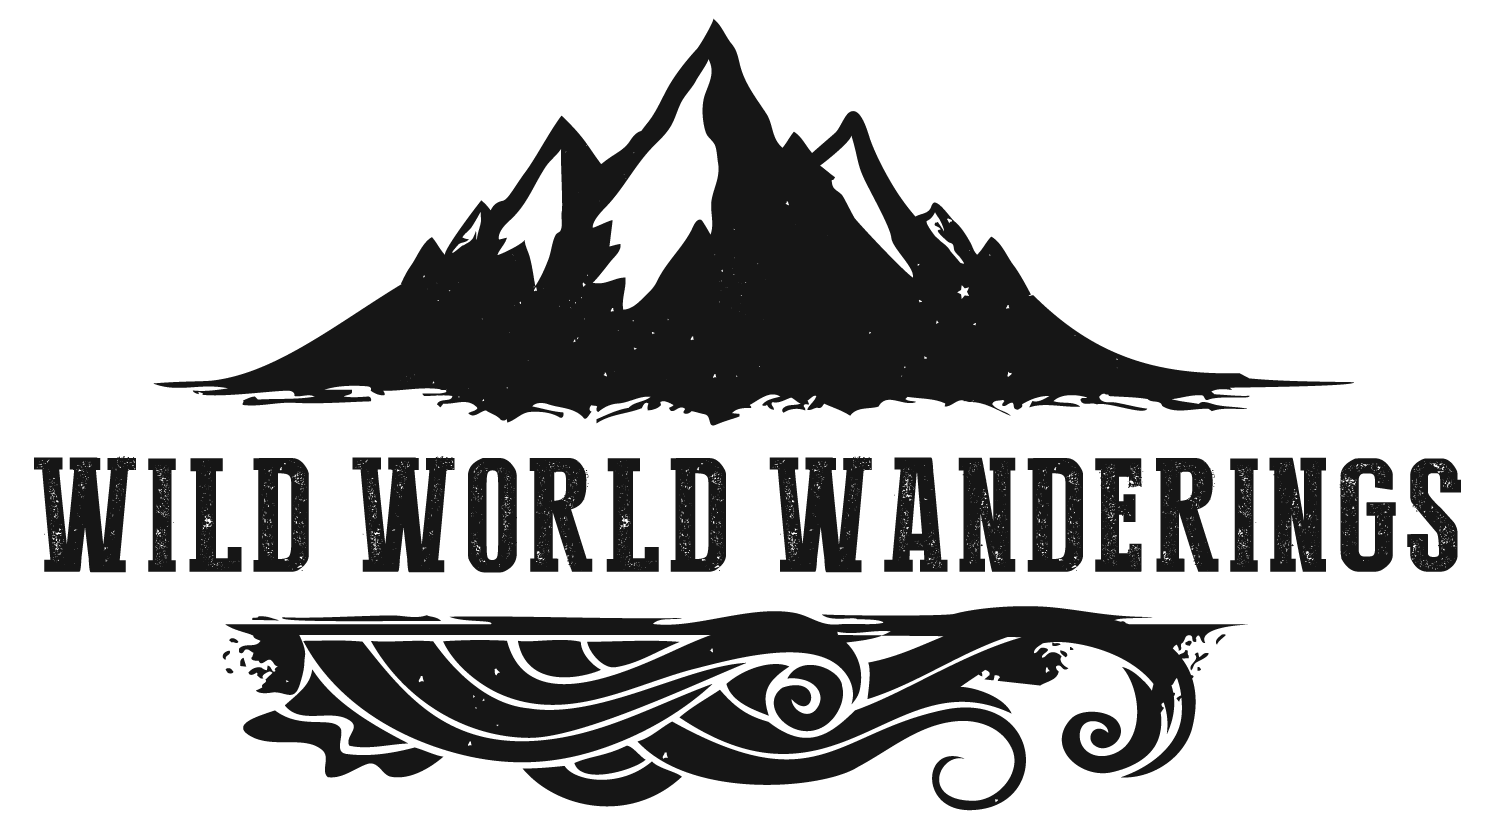 Wild World Wanderings